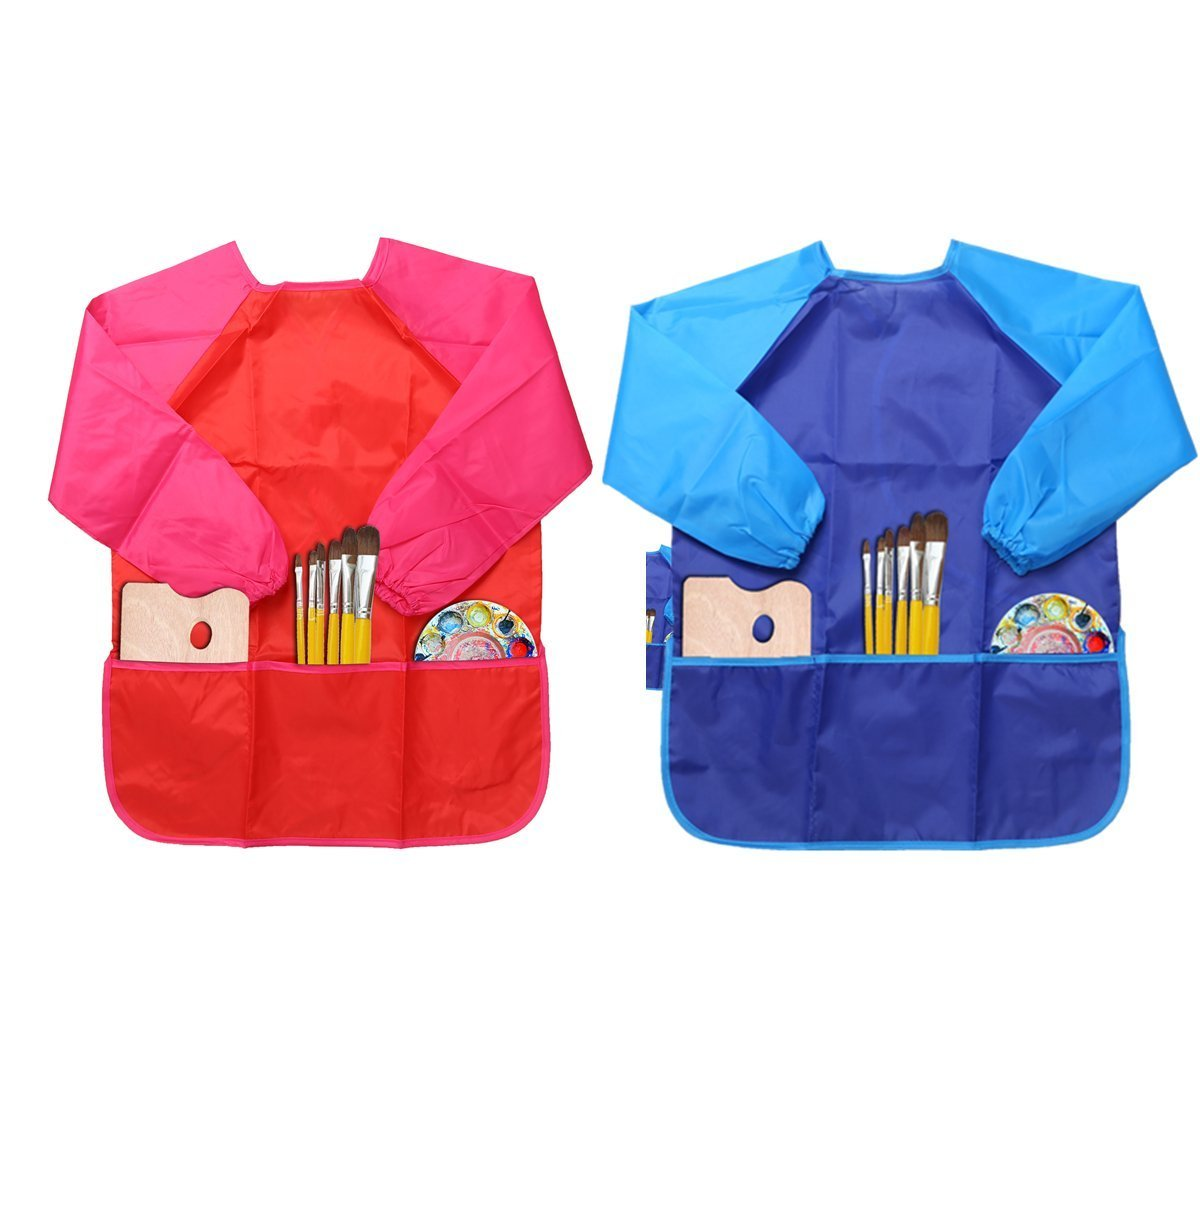 LEADSTAR Baby Waterproof Feeding Bibs with Long Sleeves, Unisex Kids Bib Apron Smock for Infant Toddler 6 Months to 3 Years Old (3 Pack)